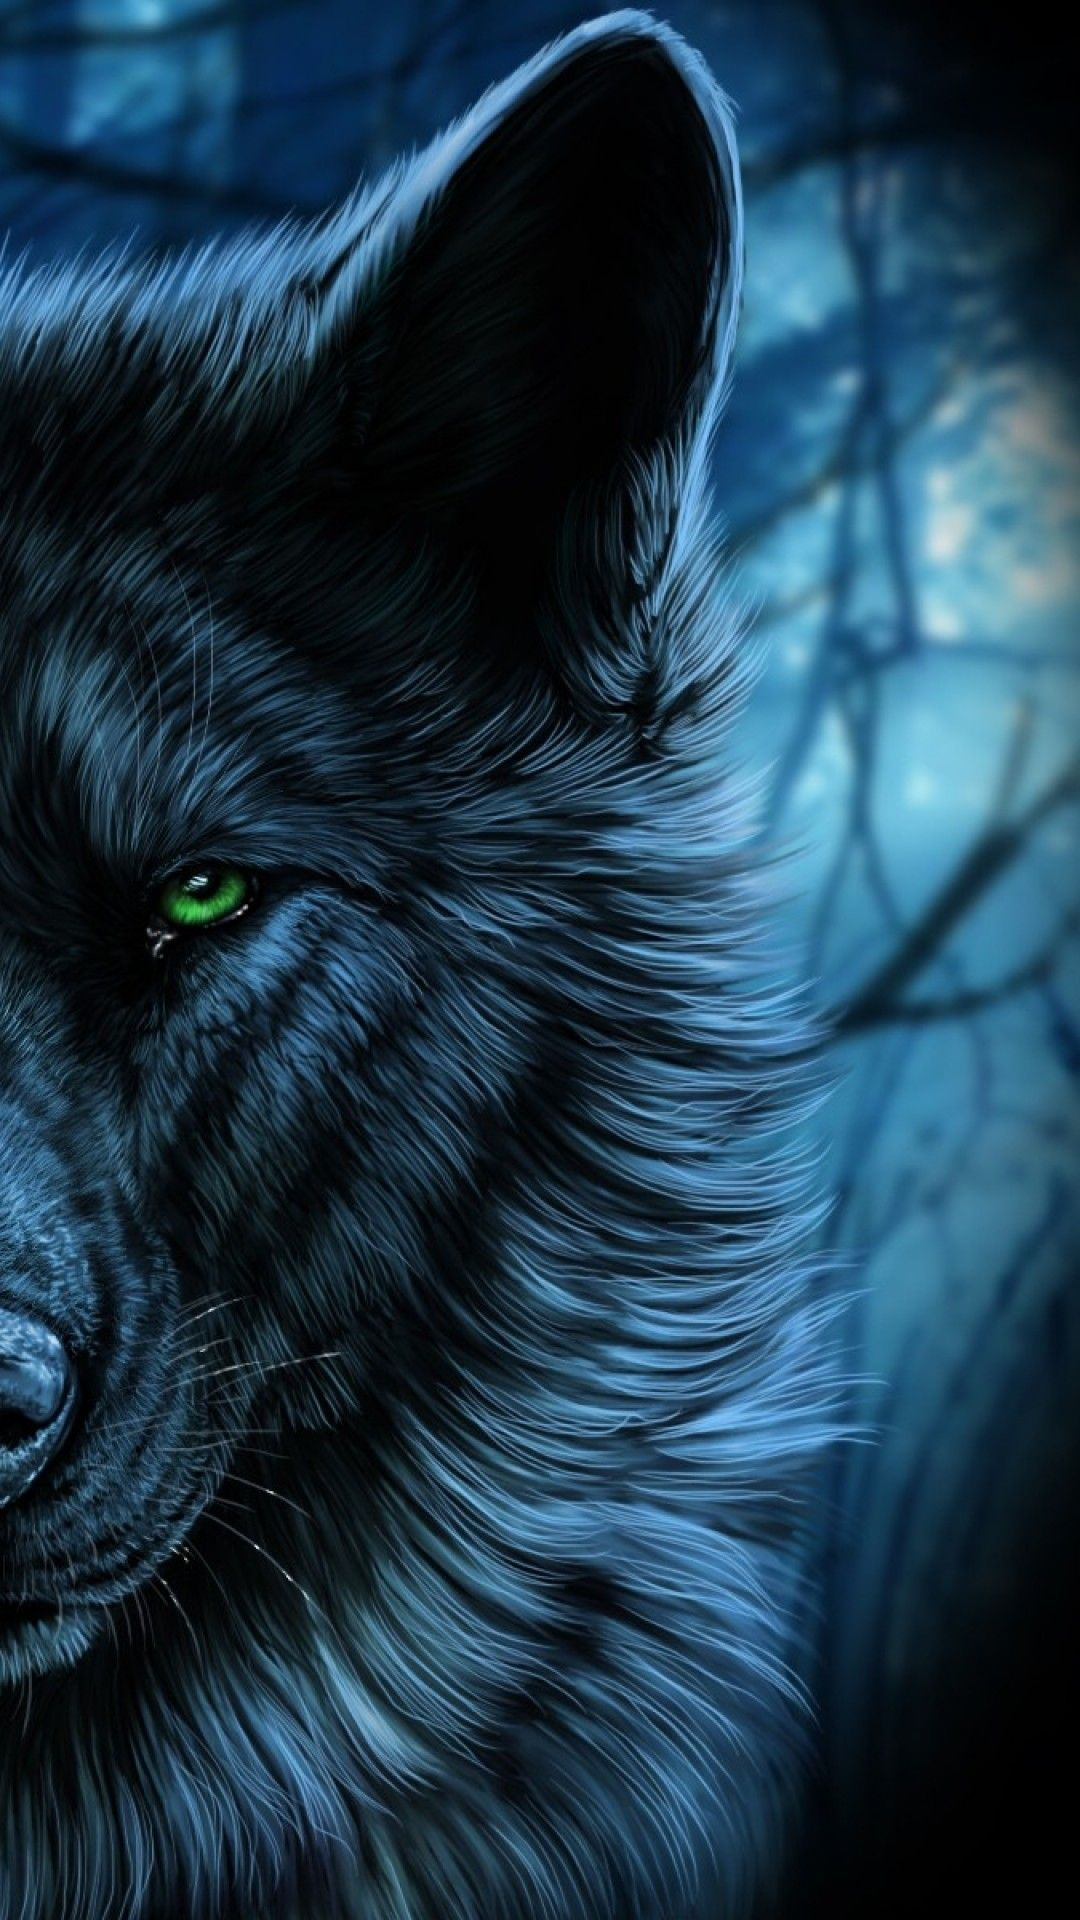 Wolf Iphone Wallpapers Top Free Wolf Iphone Backgrounds Wallpaperaccess